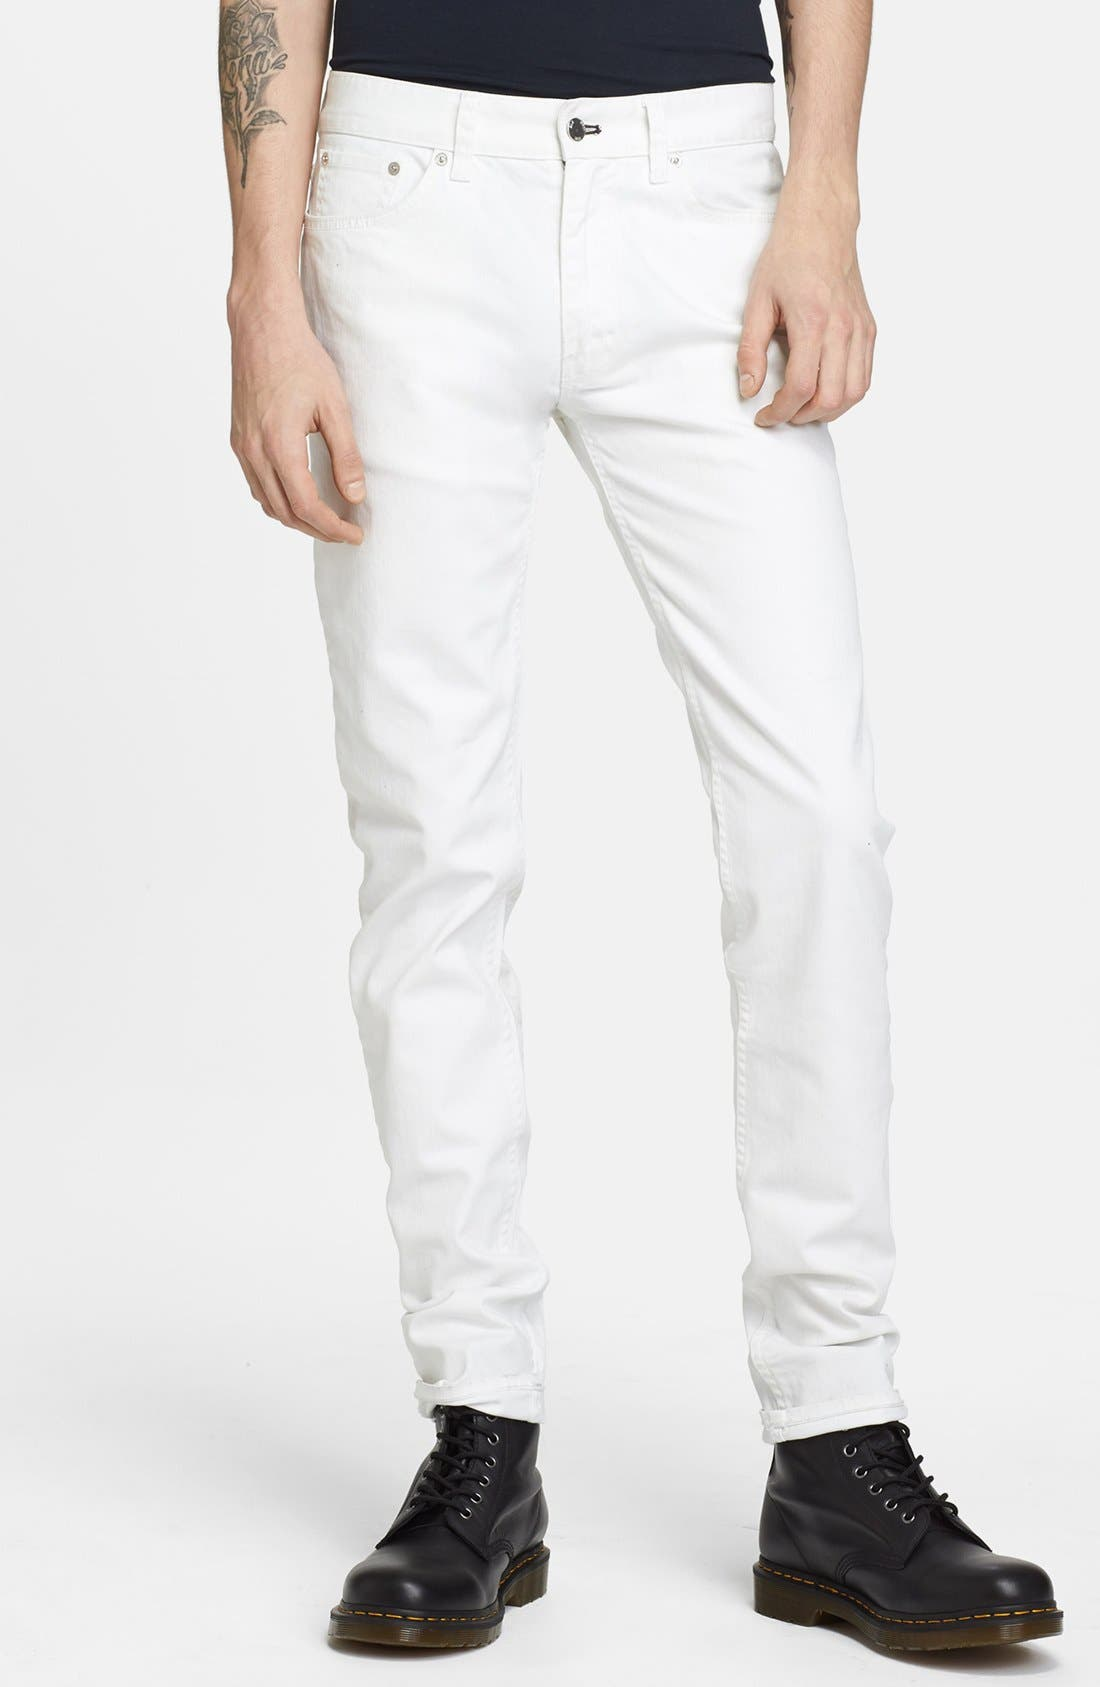 Main Image - BLK DNM 'Jeans 5' Slim Straight Leg Coated Denim Jeans (Natural White)